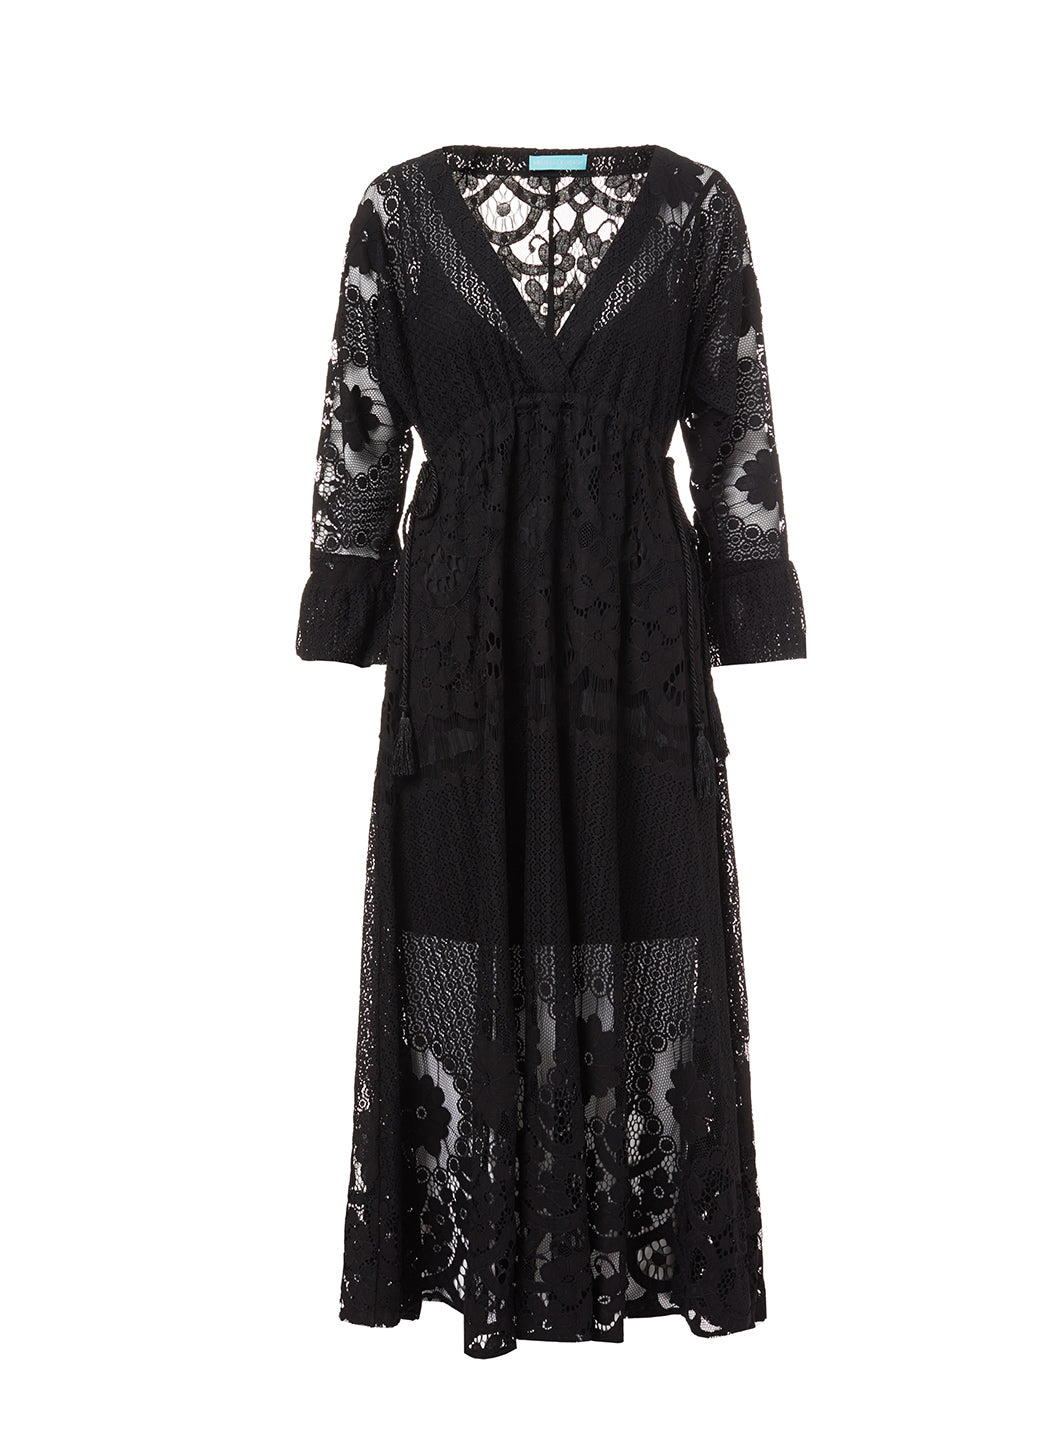 Melissa Black Lace Tie-Side Midi Dress - Melissa Odabash Dresses & Kaftans